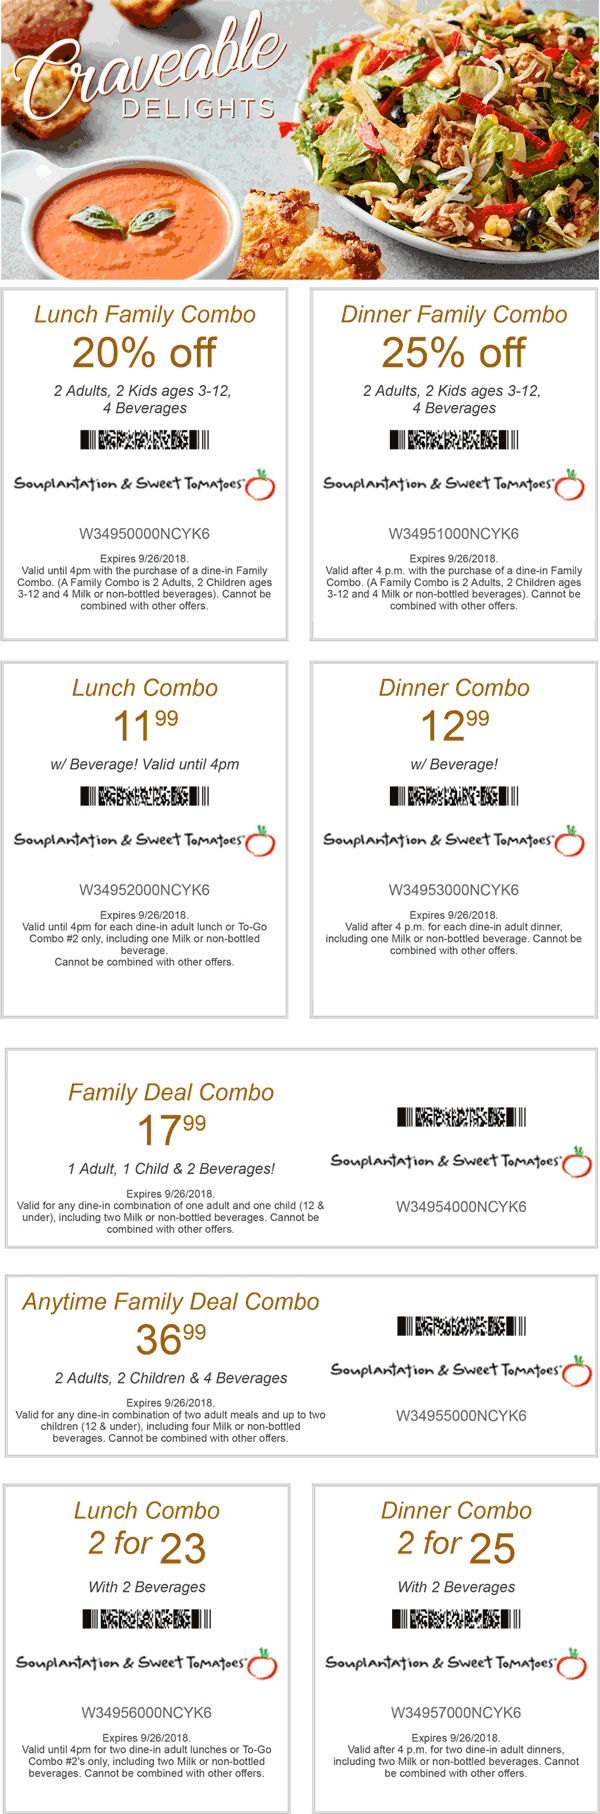 Sweet Tomatoes Coupon November 2019 25% off dinner & more at Souplantation & Sweet Tomatoes